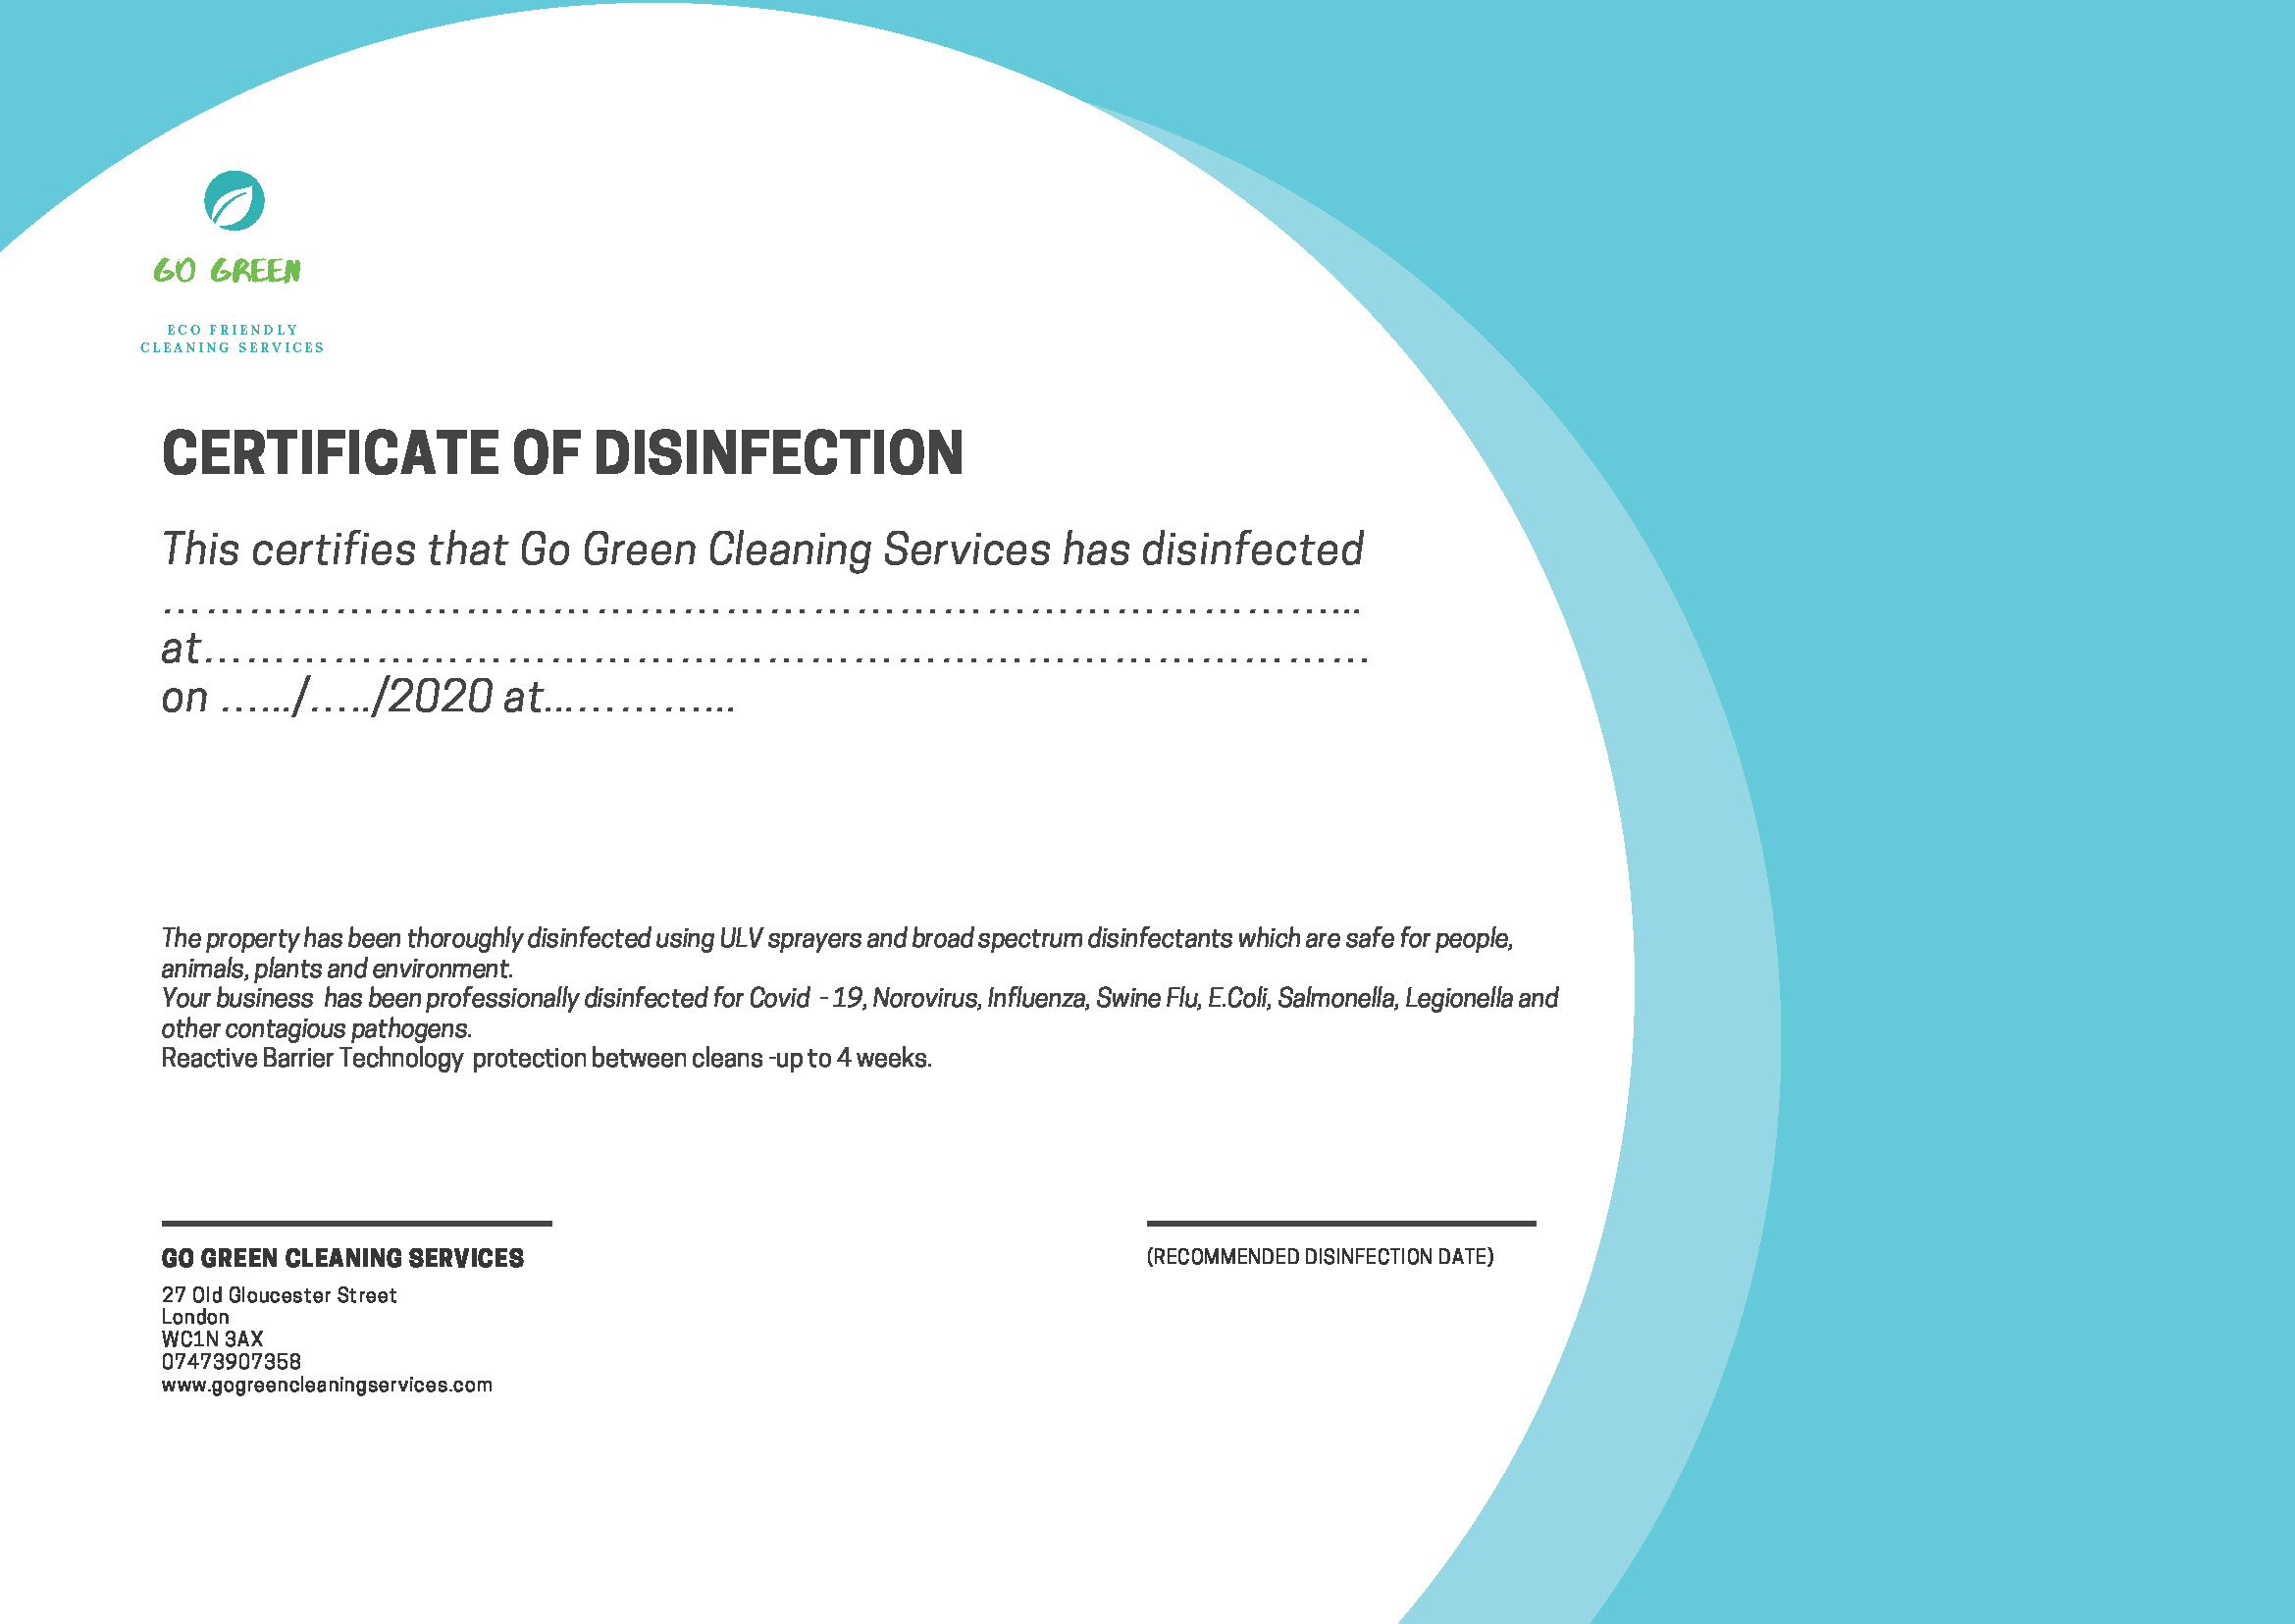 Go green disinfection certificate 2020_Page_1